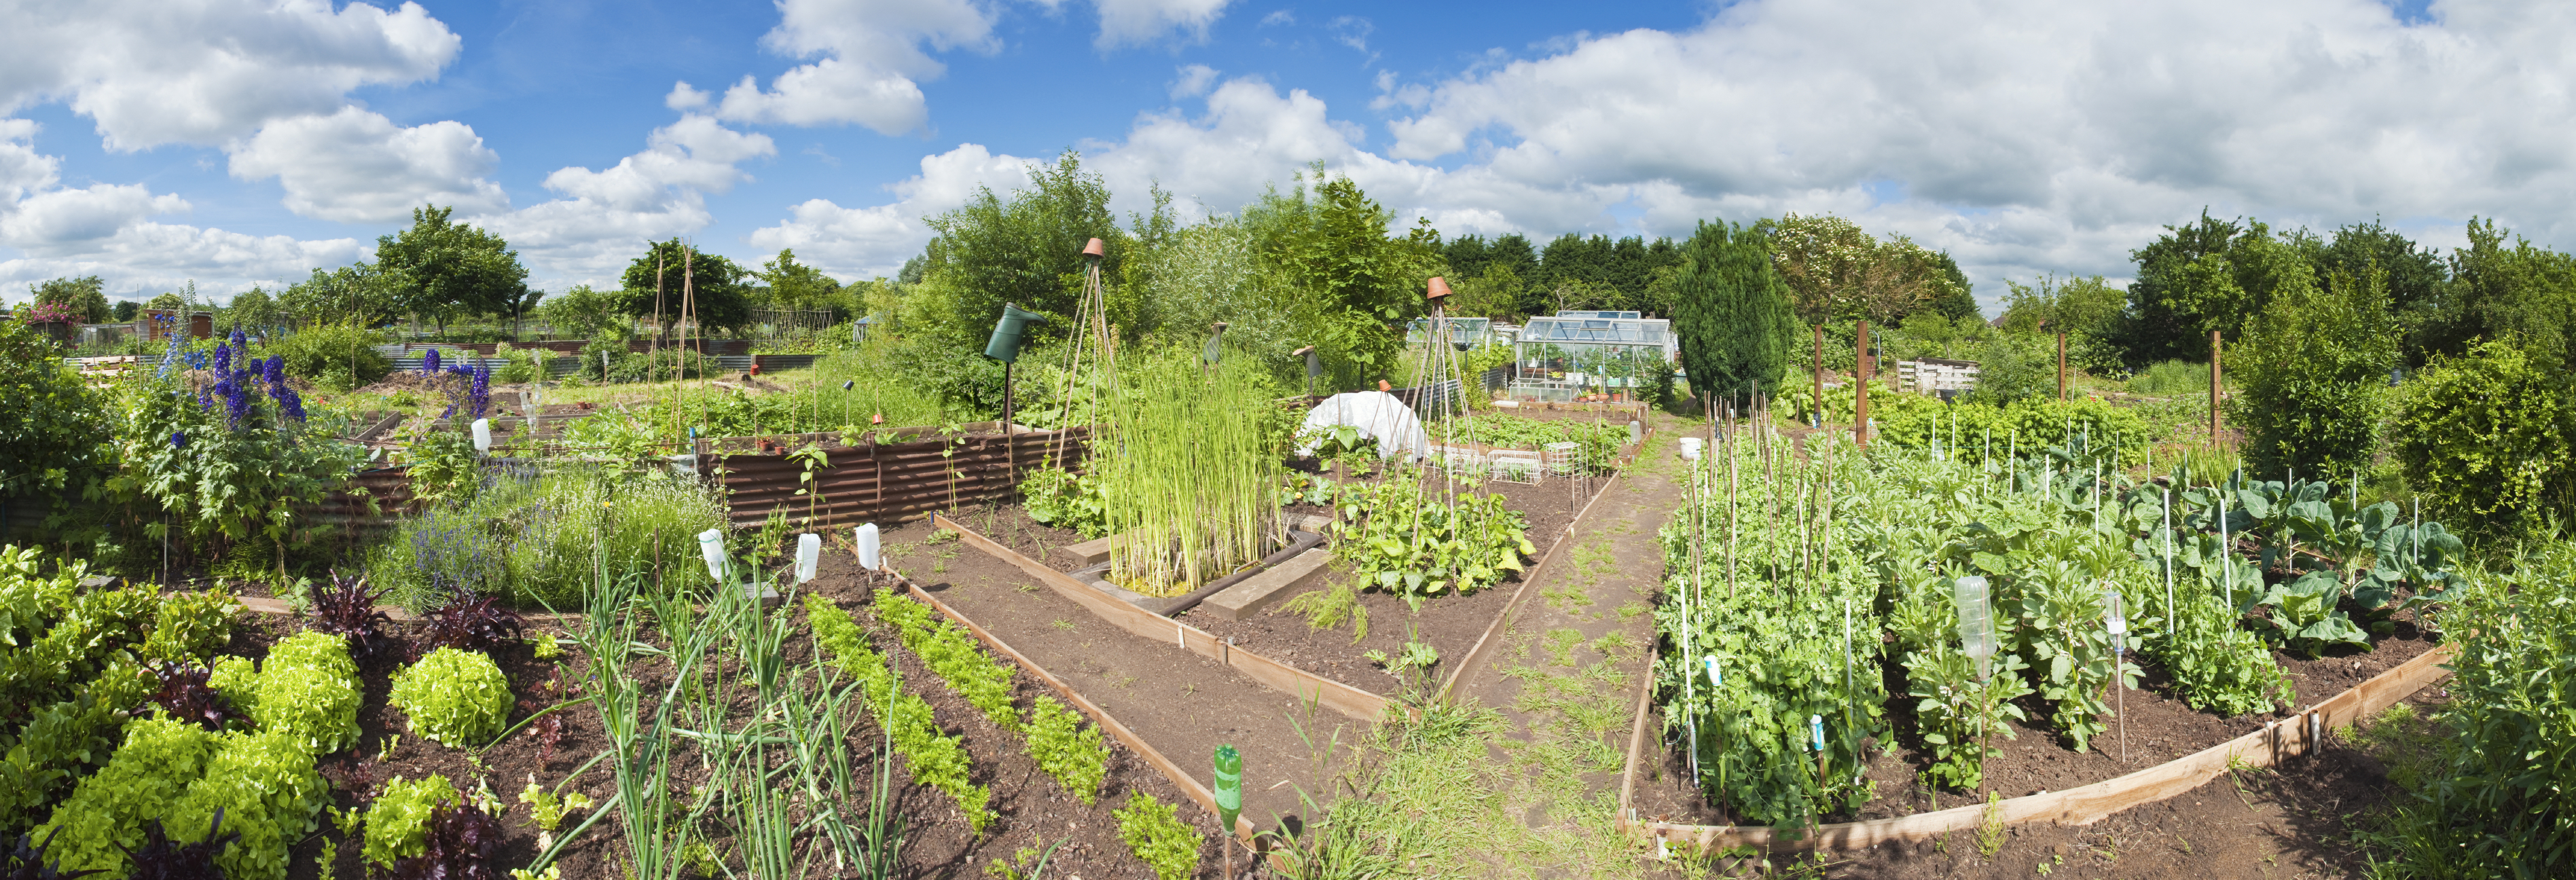 Parks Week 2016 Community Garden Open Day Sale Active